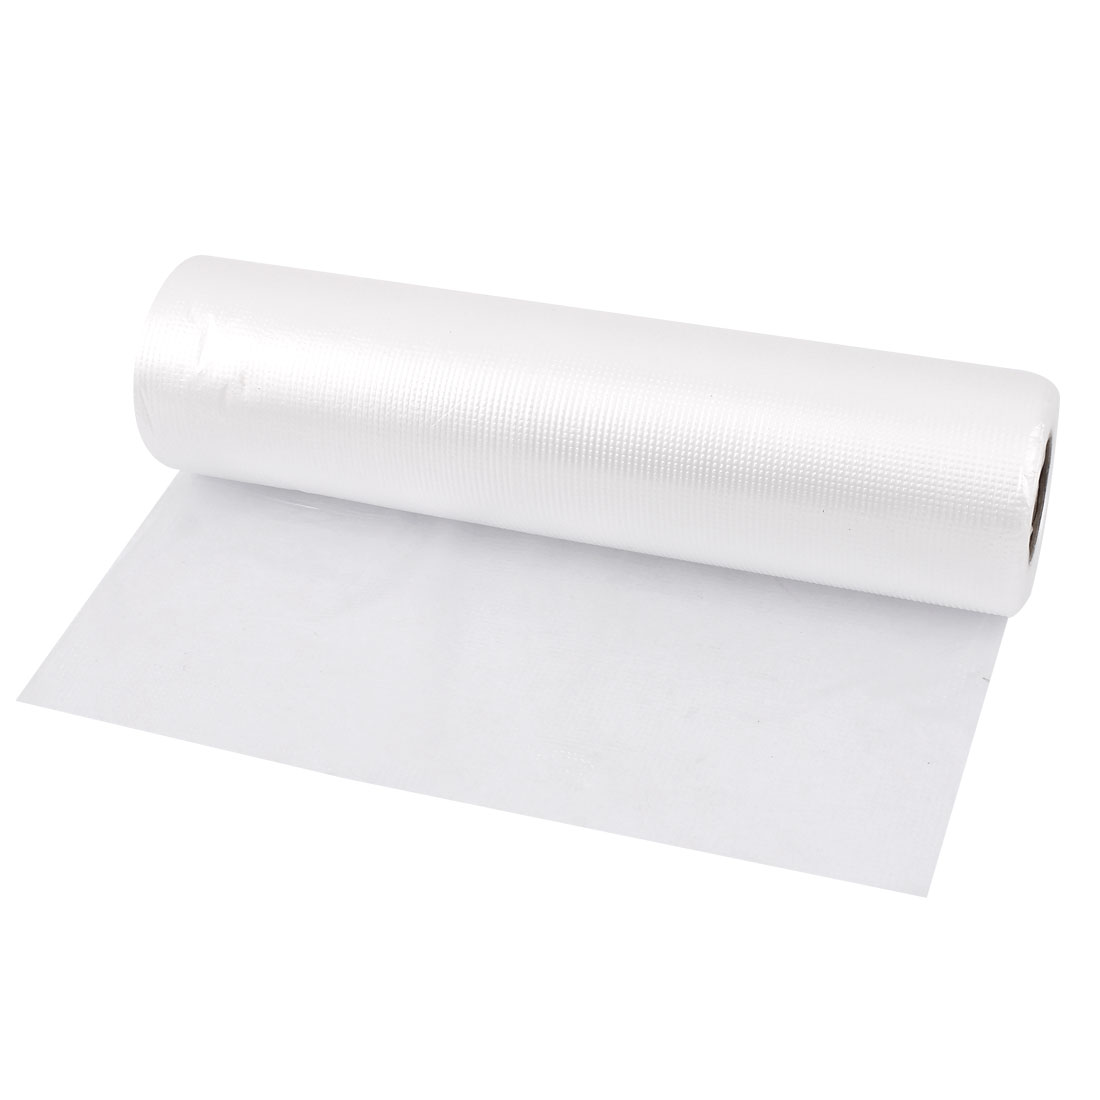 Meat Vegetable Protector Clear Freshness Protection Package Roll 30cm x 20cm